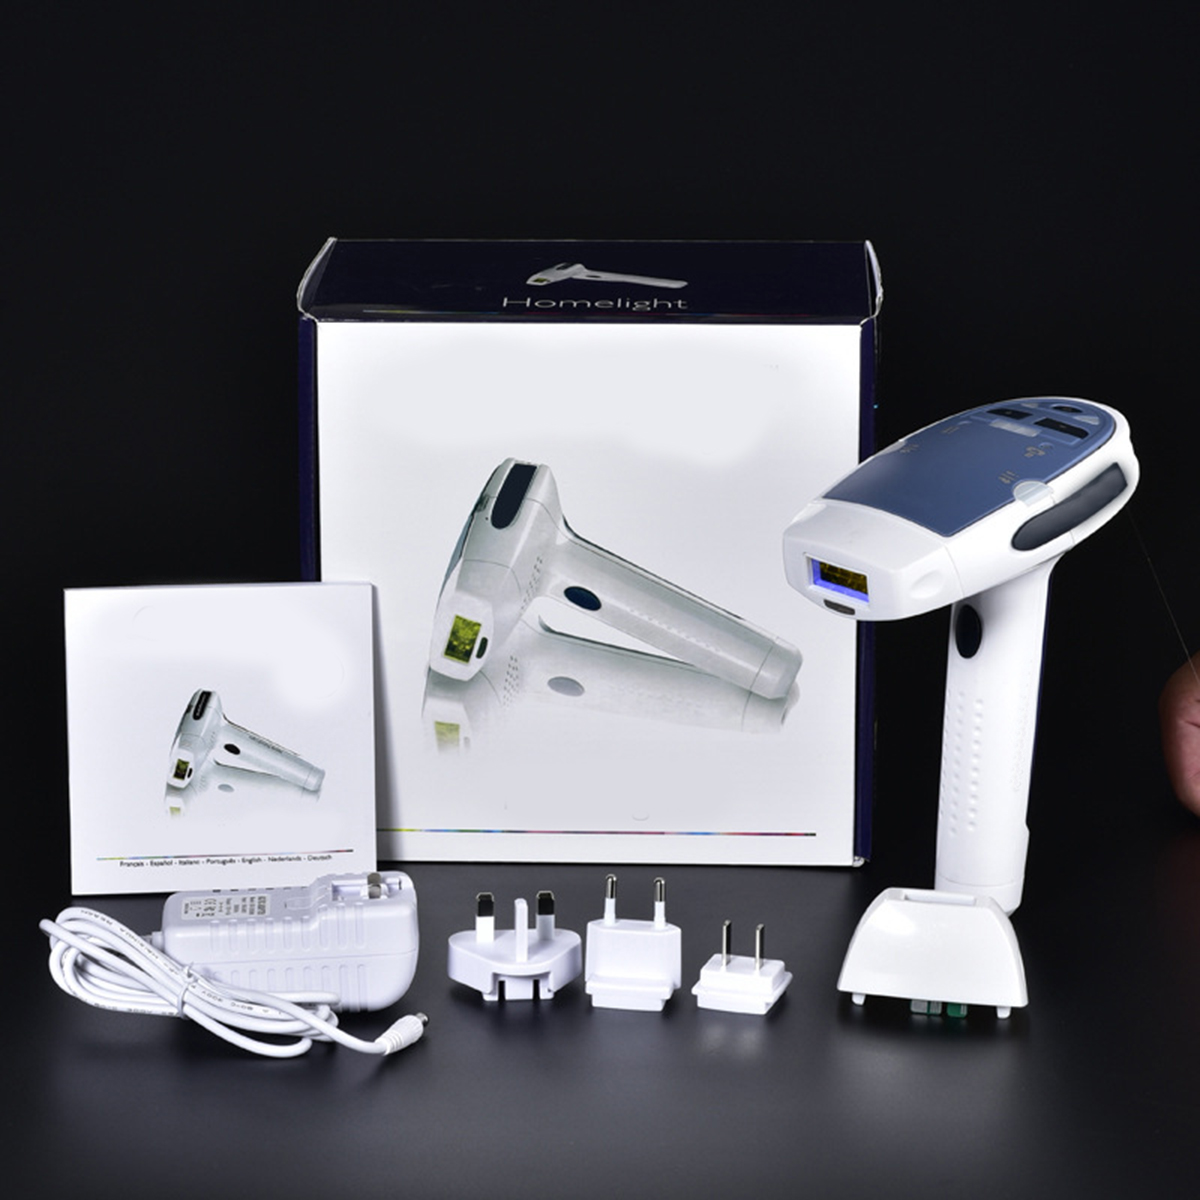 HPL Laser Body Hair Removal Epilator Permanent Home Use Depilator SKU539835